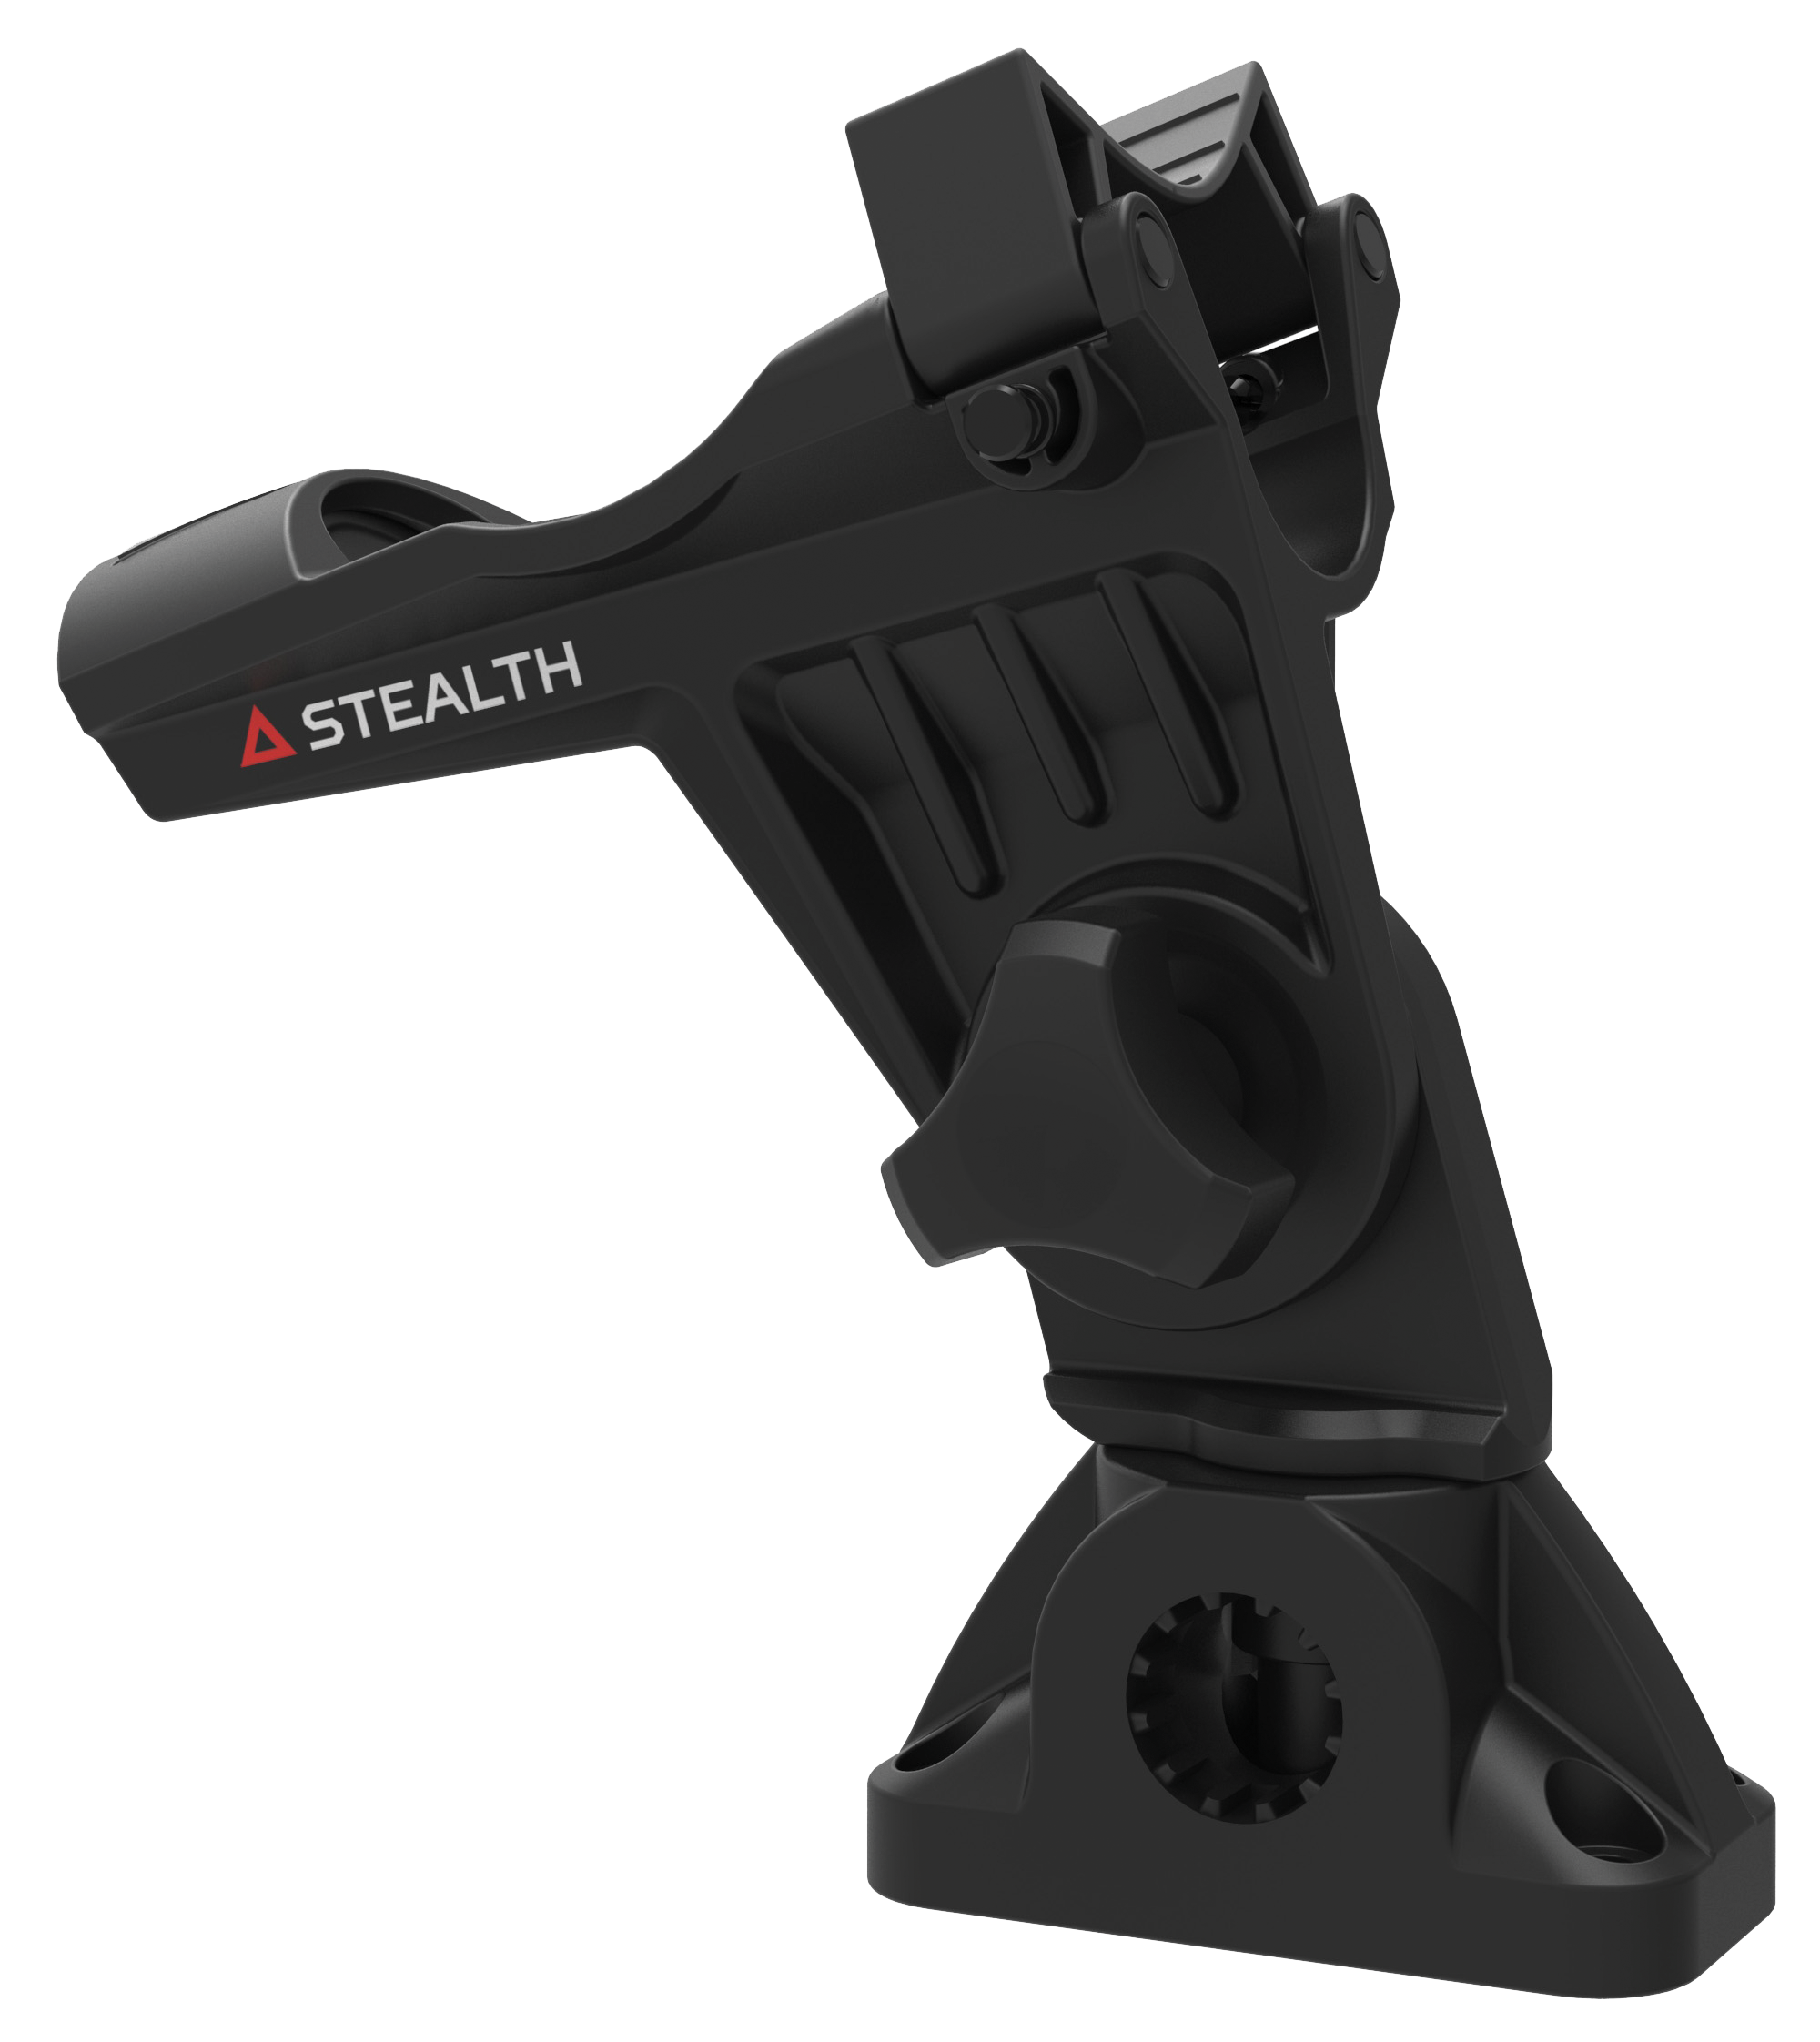 Mounts, Tracks & Accessories: QR - 2 Quick Release Rod Holder by Stealth Rod Holders - Image 4720